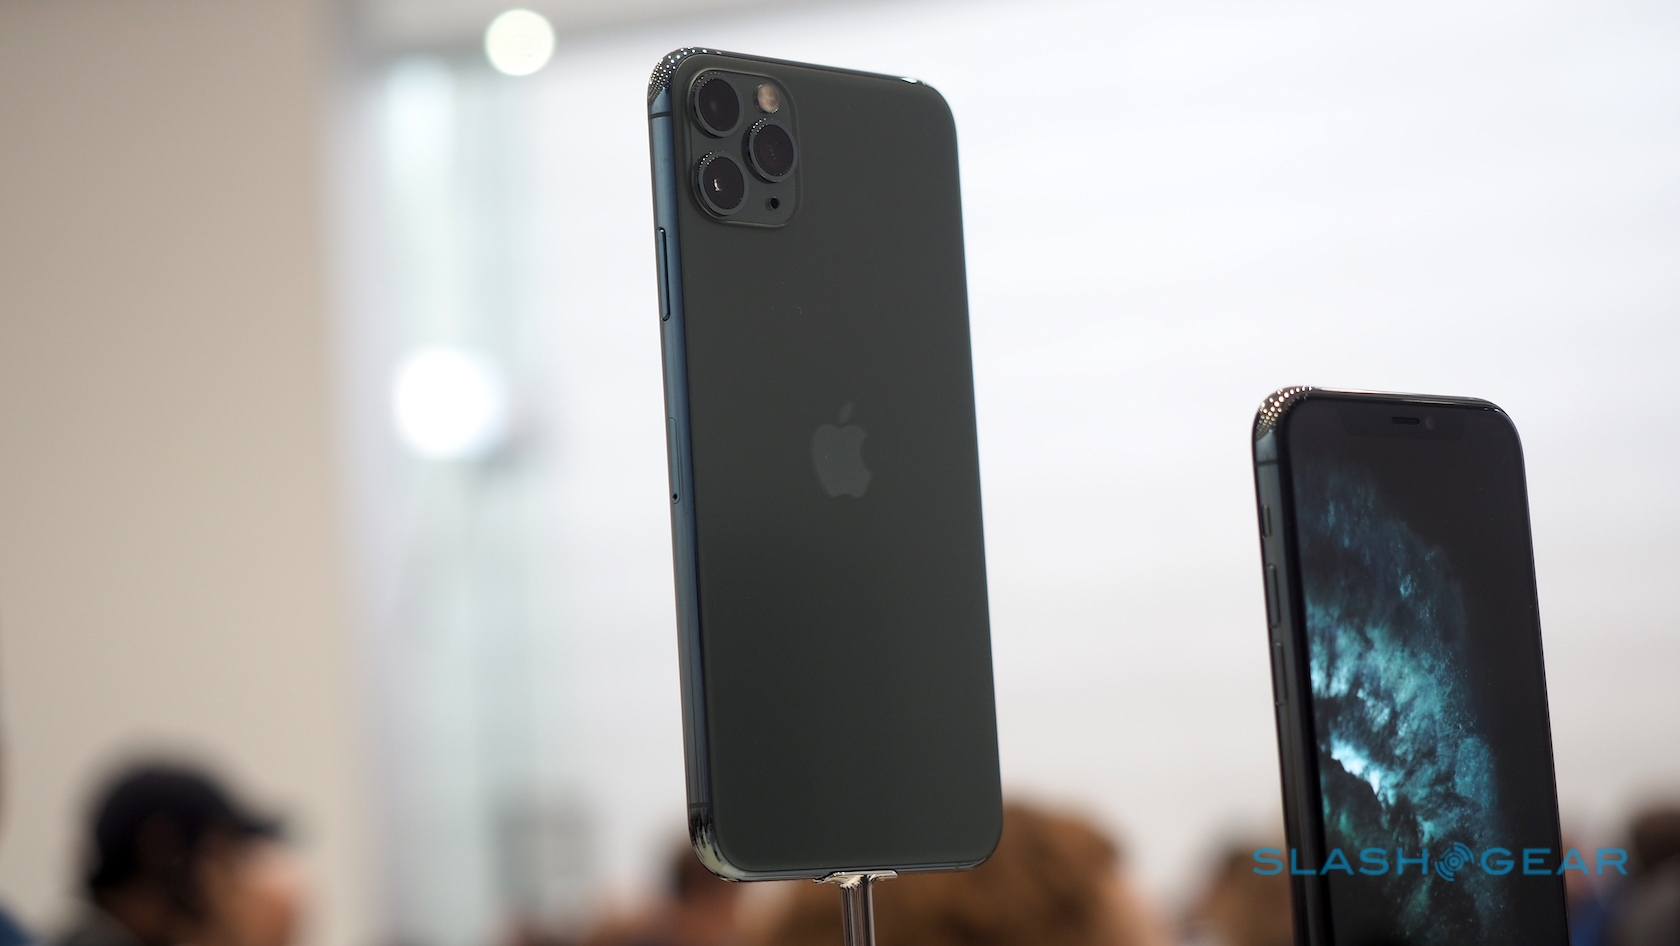 iPhone 11 Pro Max Details on the most extravagant iPhone